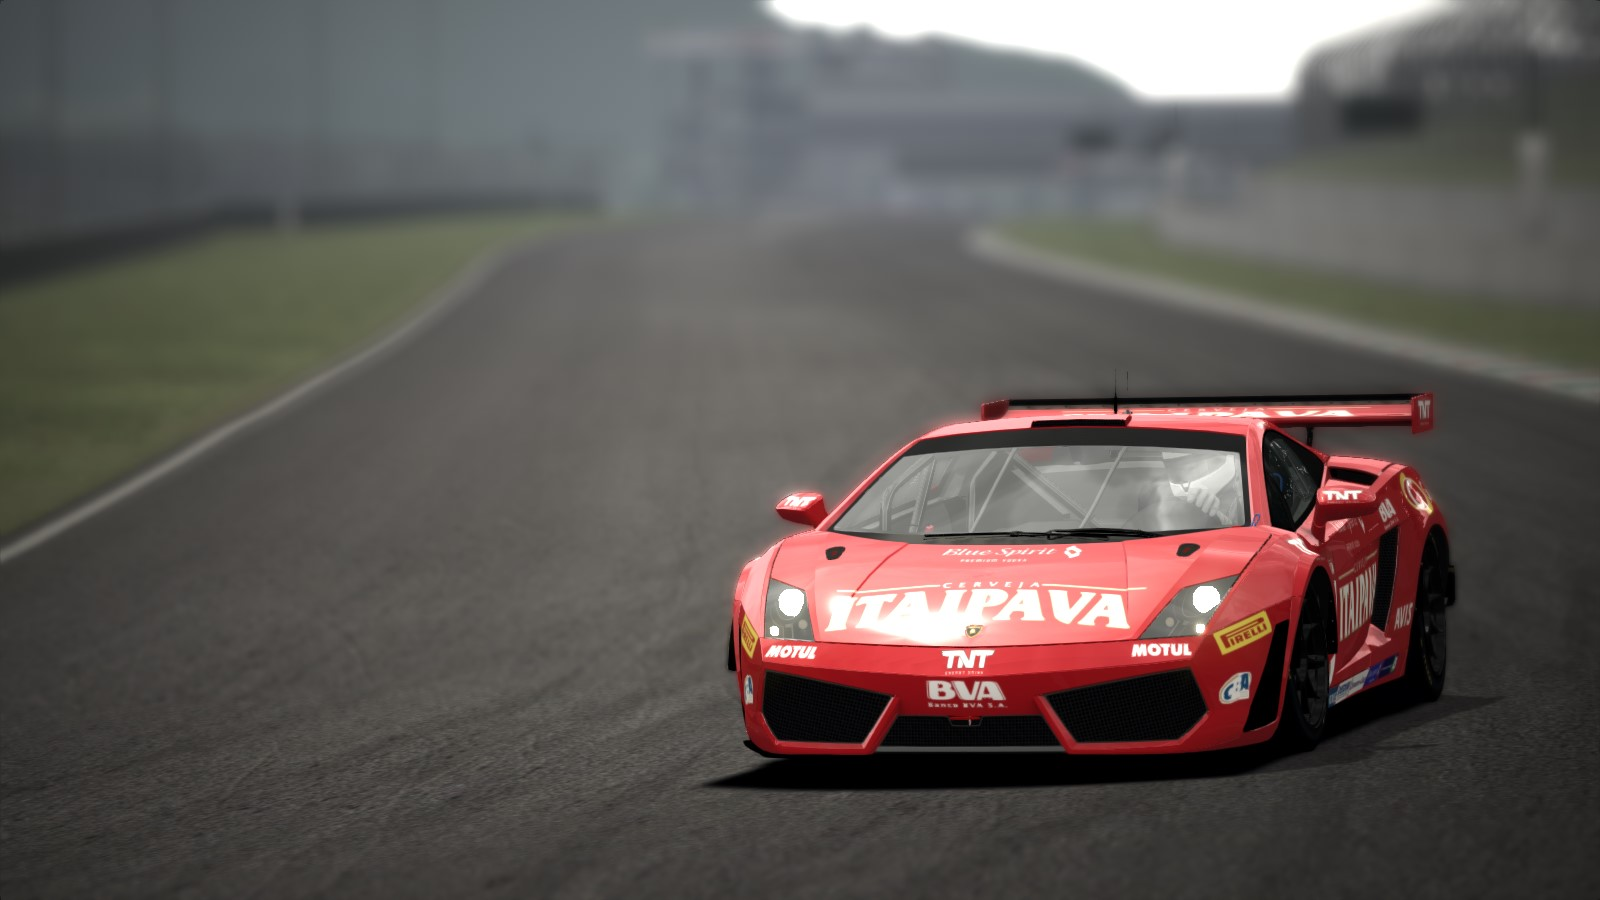 Screenshot_lamborghini_gallardo_gt3_mugello_15-4-115-13-30-33.jpg